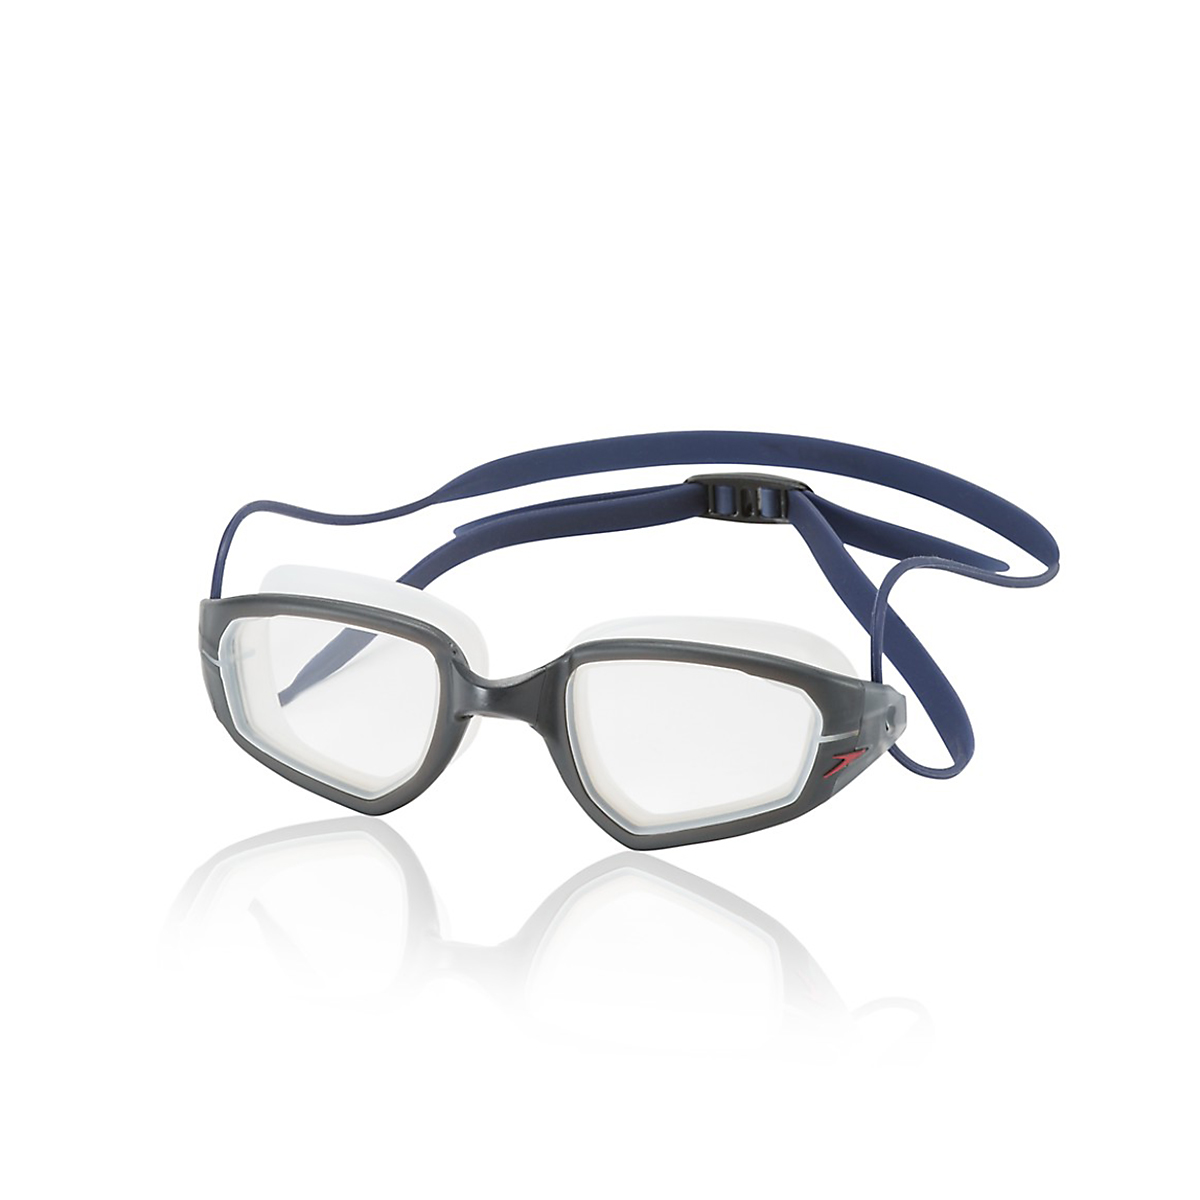 Speedo Covert Goggles - Color: Clear, Clear, large, image 1